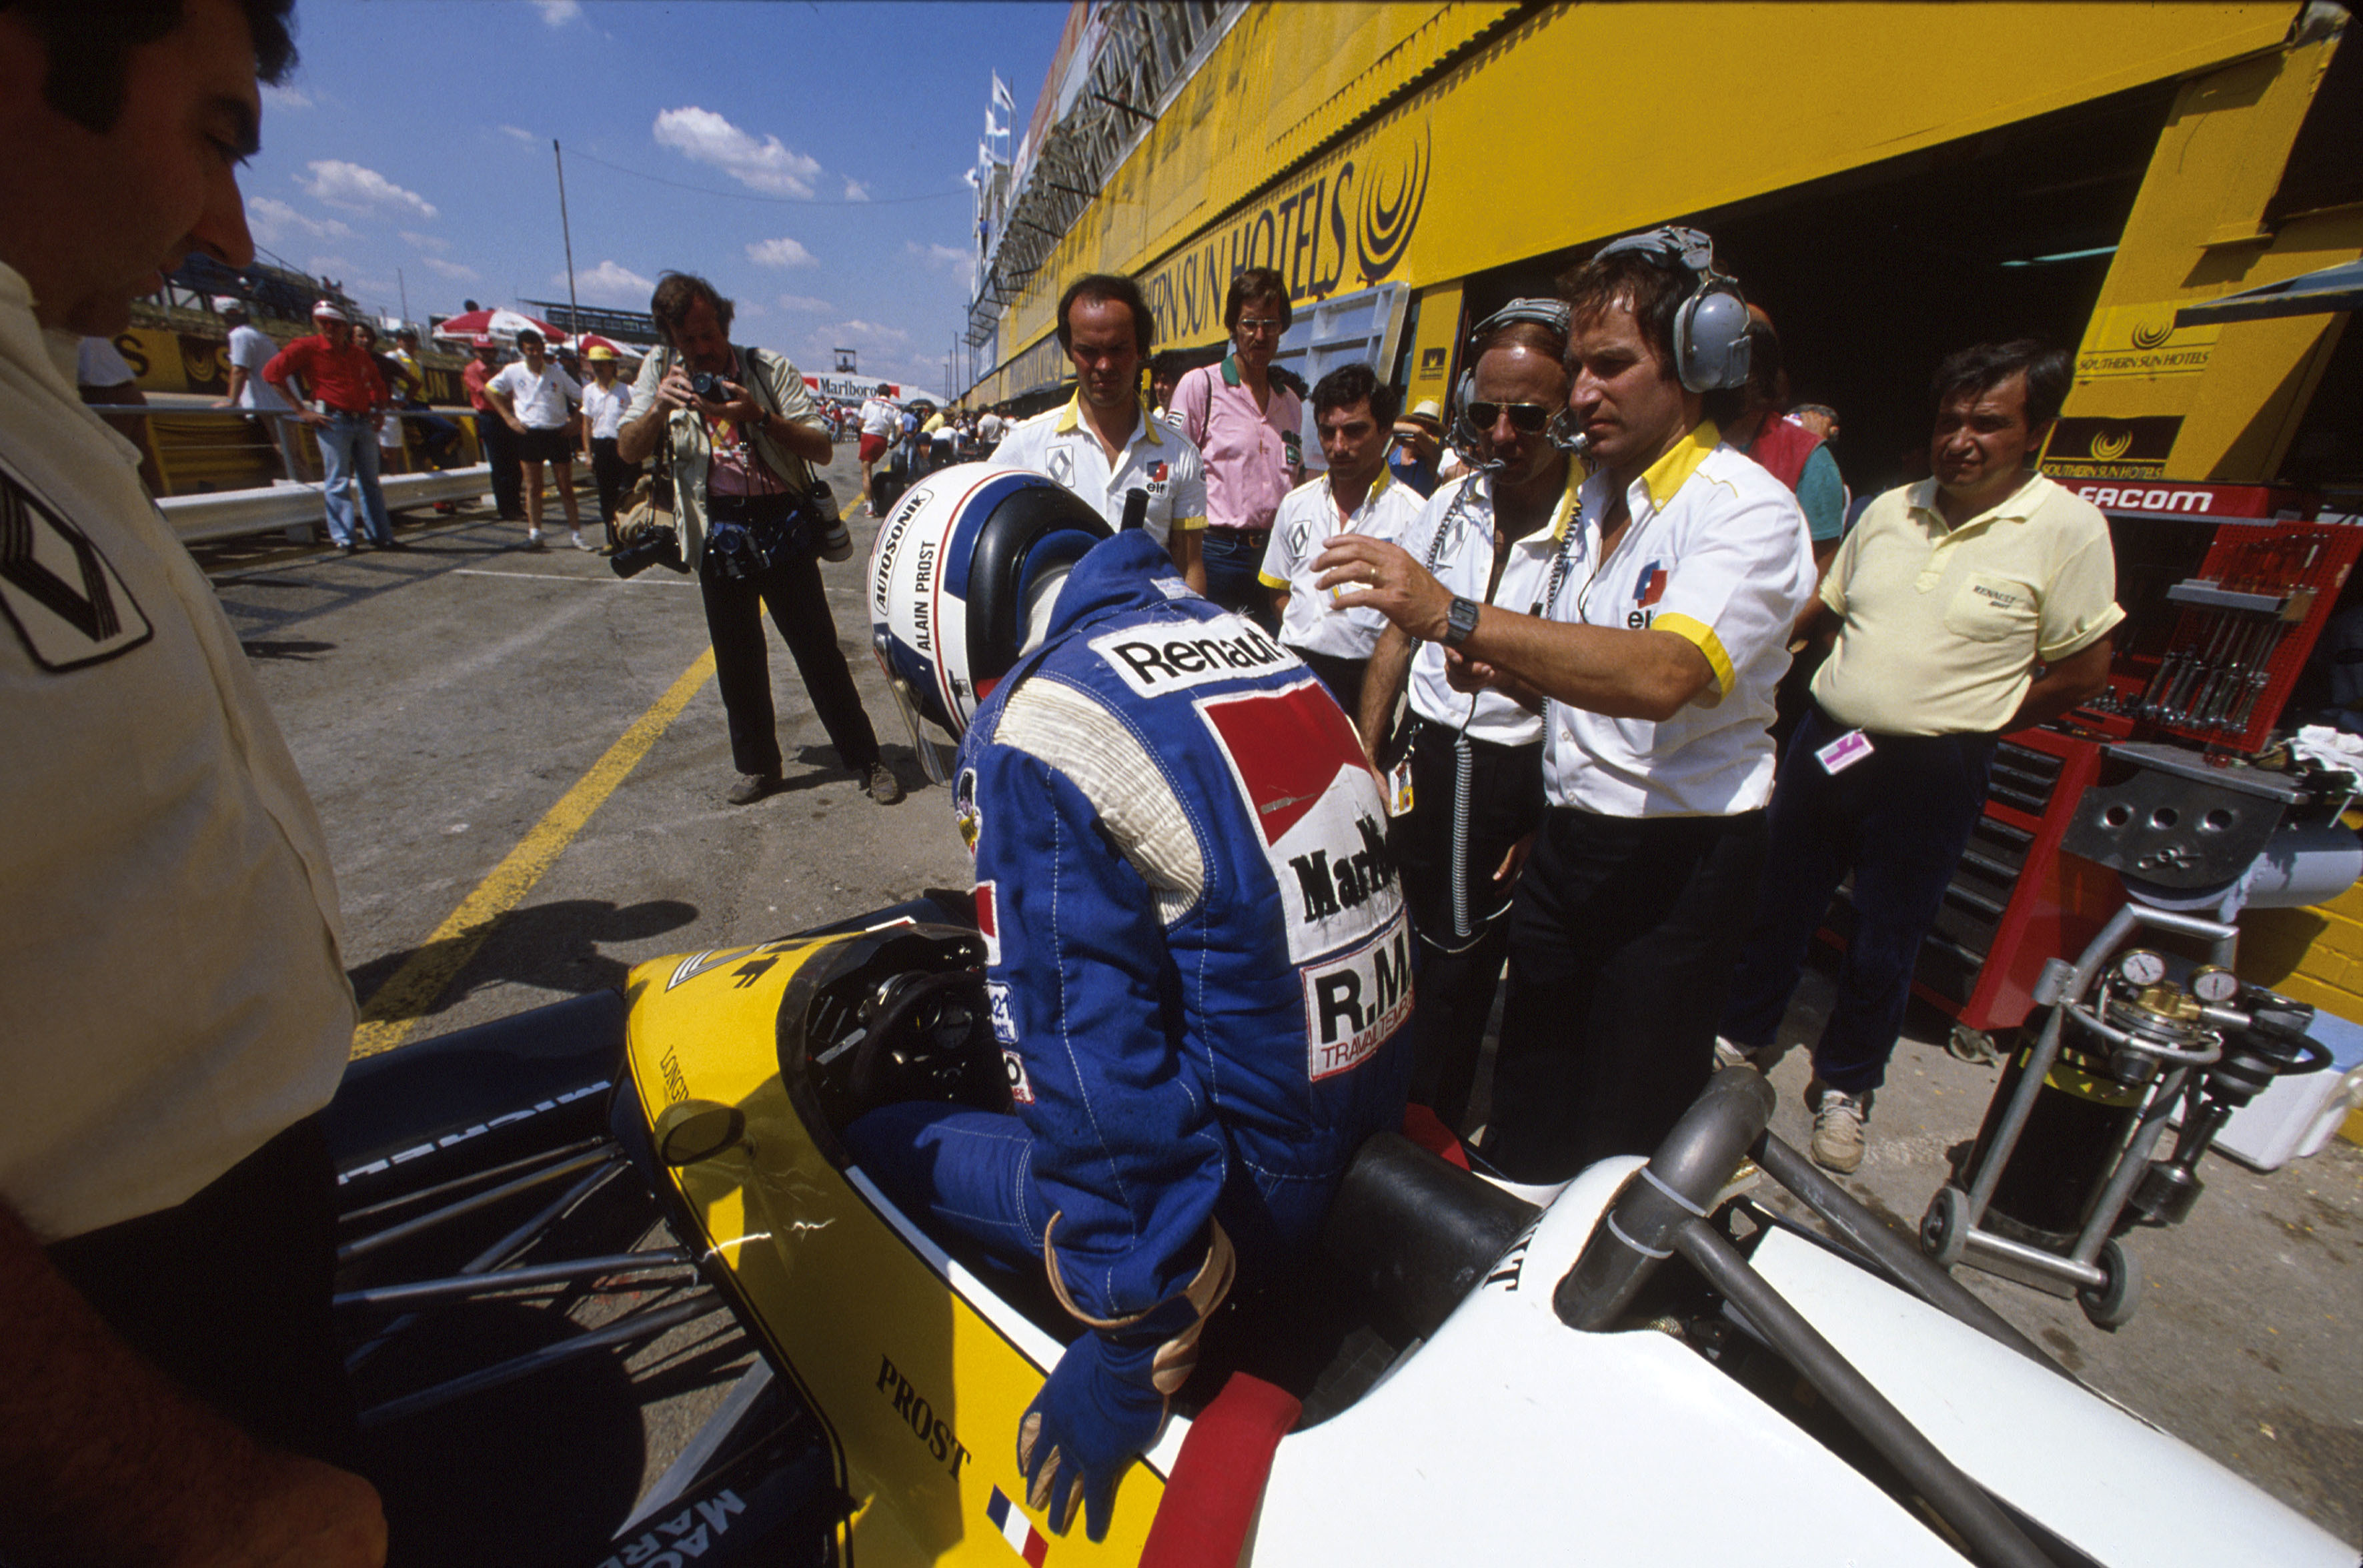 1983 kyalami alain prost HD Wallpaper